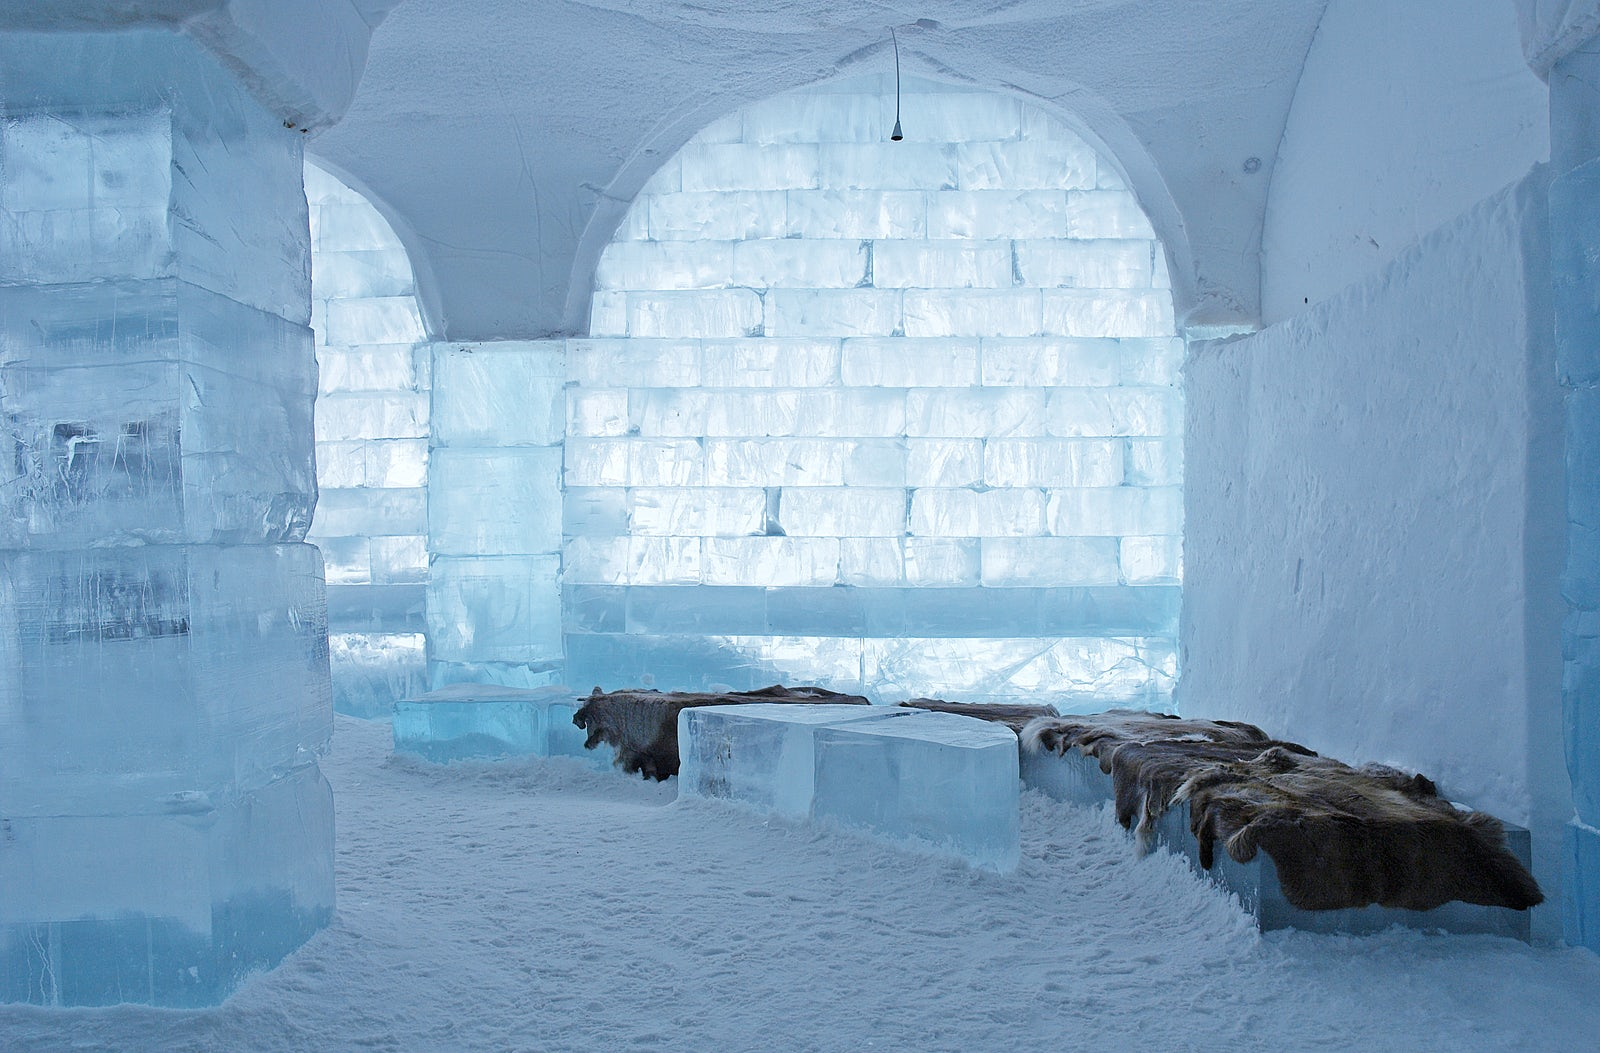 The biggest Ice Hotel in the world